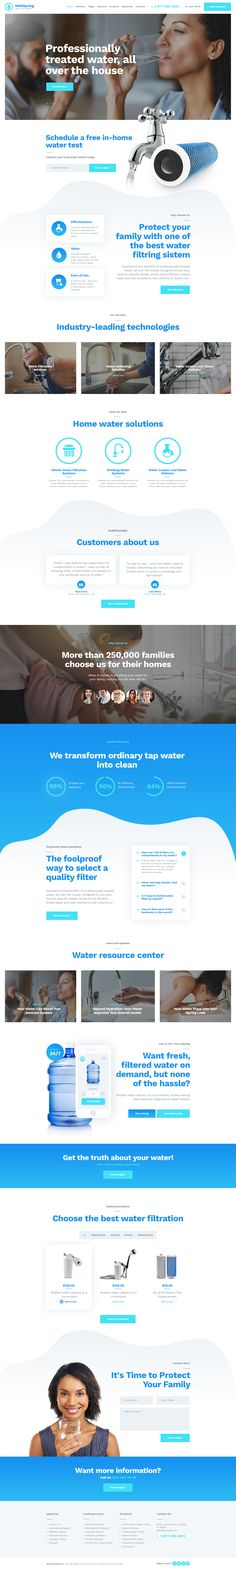 A Great Solution for Water Supply Shop or a Drinking Water Delivery Company Has Arrived 💧! Meet a New for Filtering Systems & Drinking Water Delivery Business! ⚫️ ⚫️ ⏰ OFF for 3 Days Only! Bottled Water Delivery, Water Company, Professional Web Design, Energy Companies, Typography Layout, Website Design Inspiration, Water Supply, Solar System, Ideas